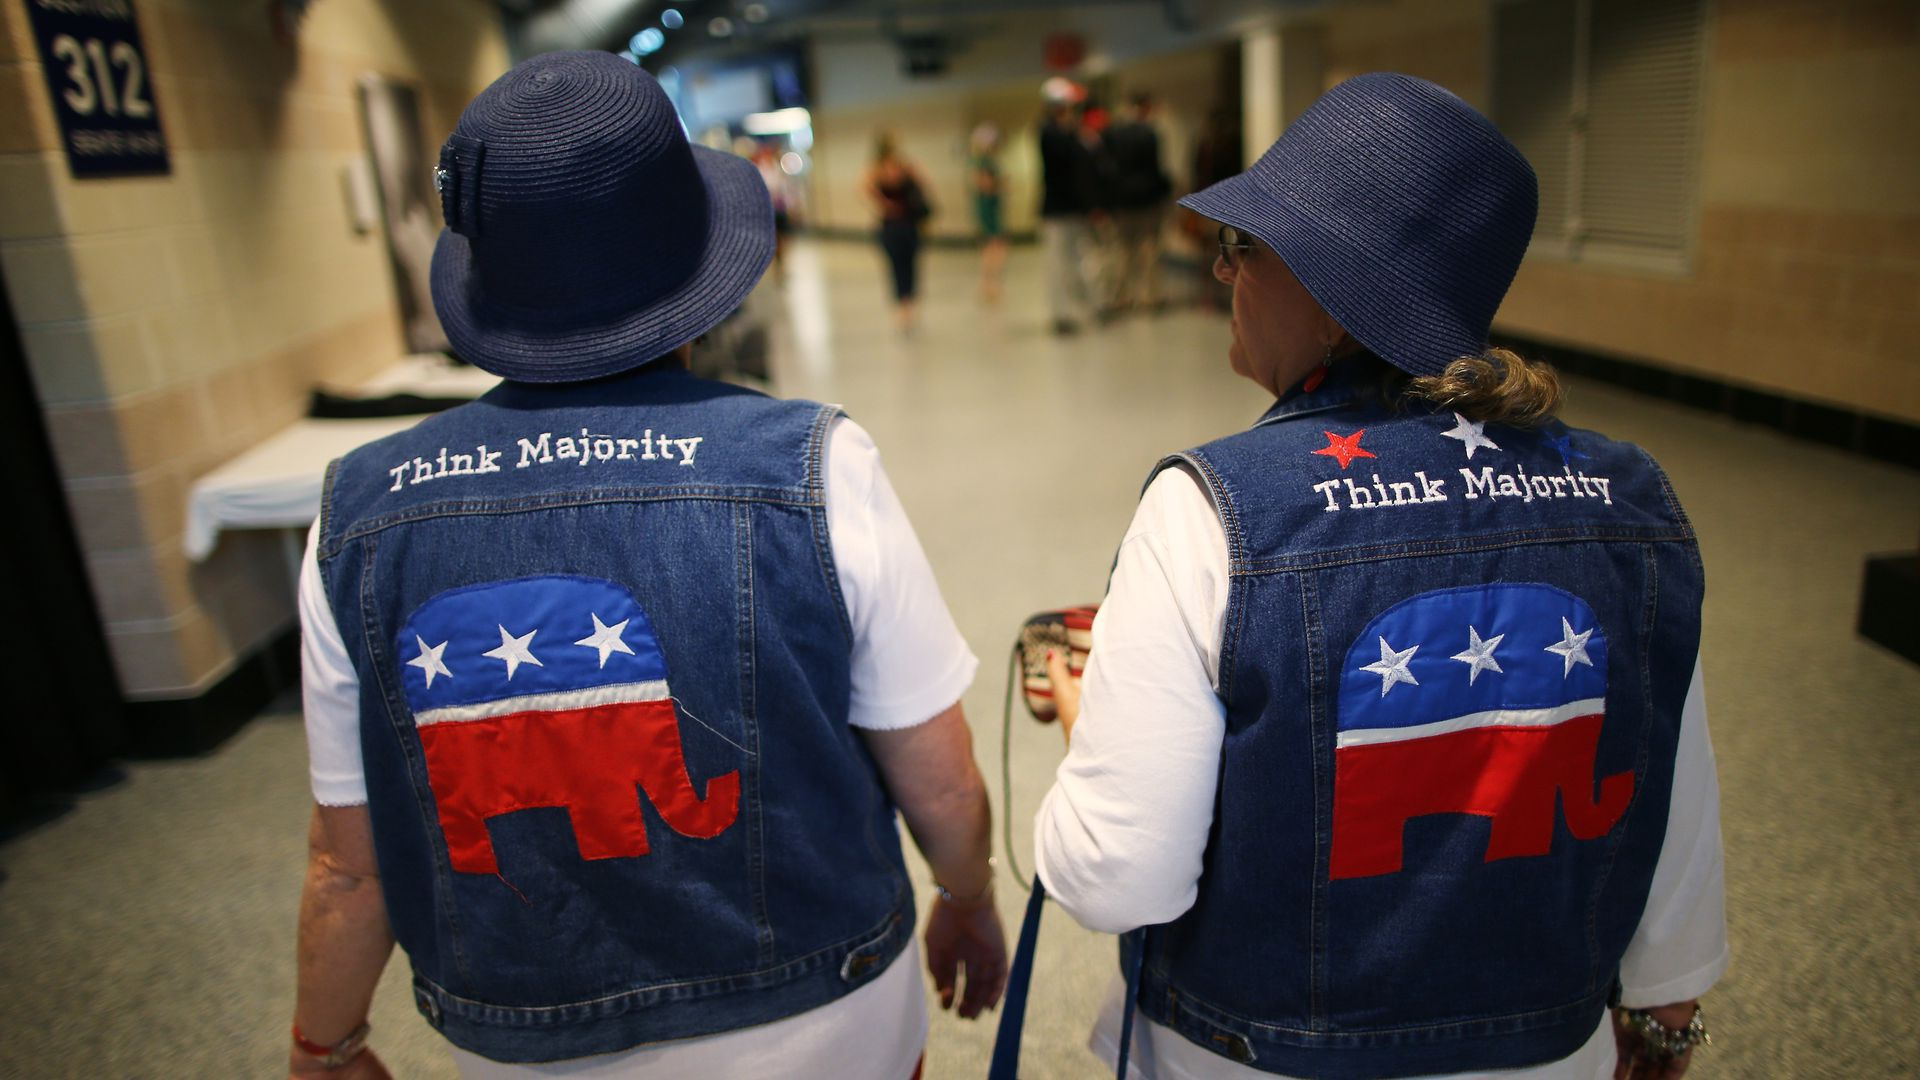 Two women don jean jackets with the GOP logo